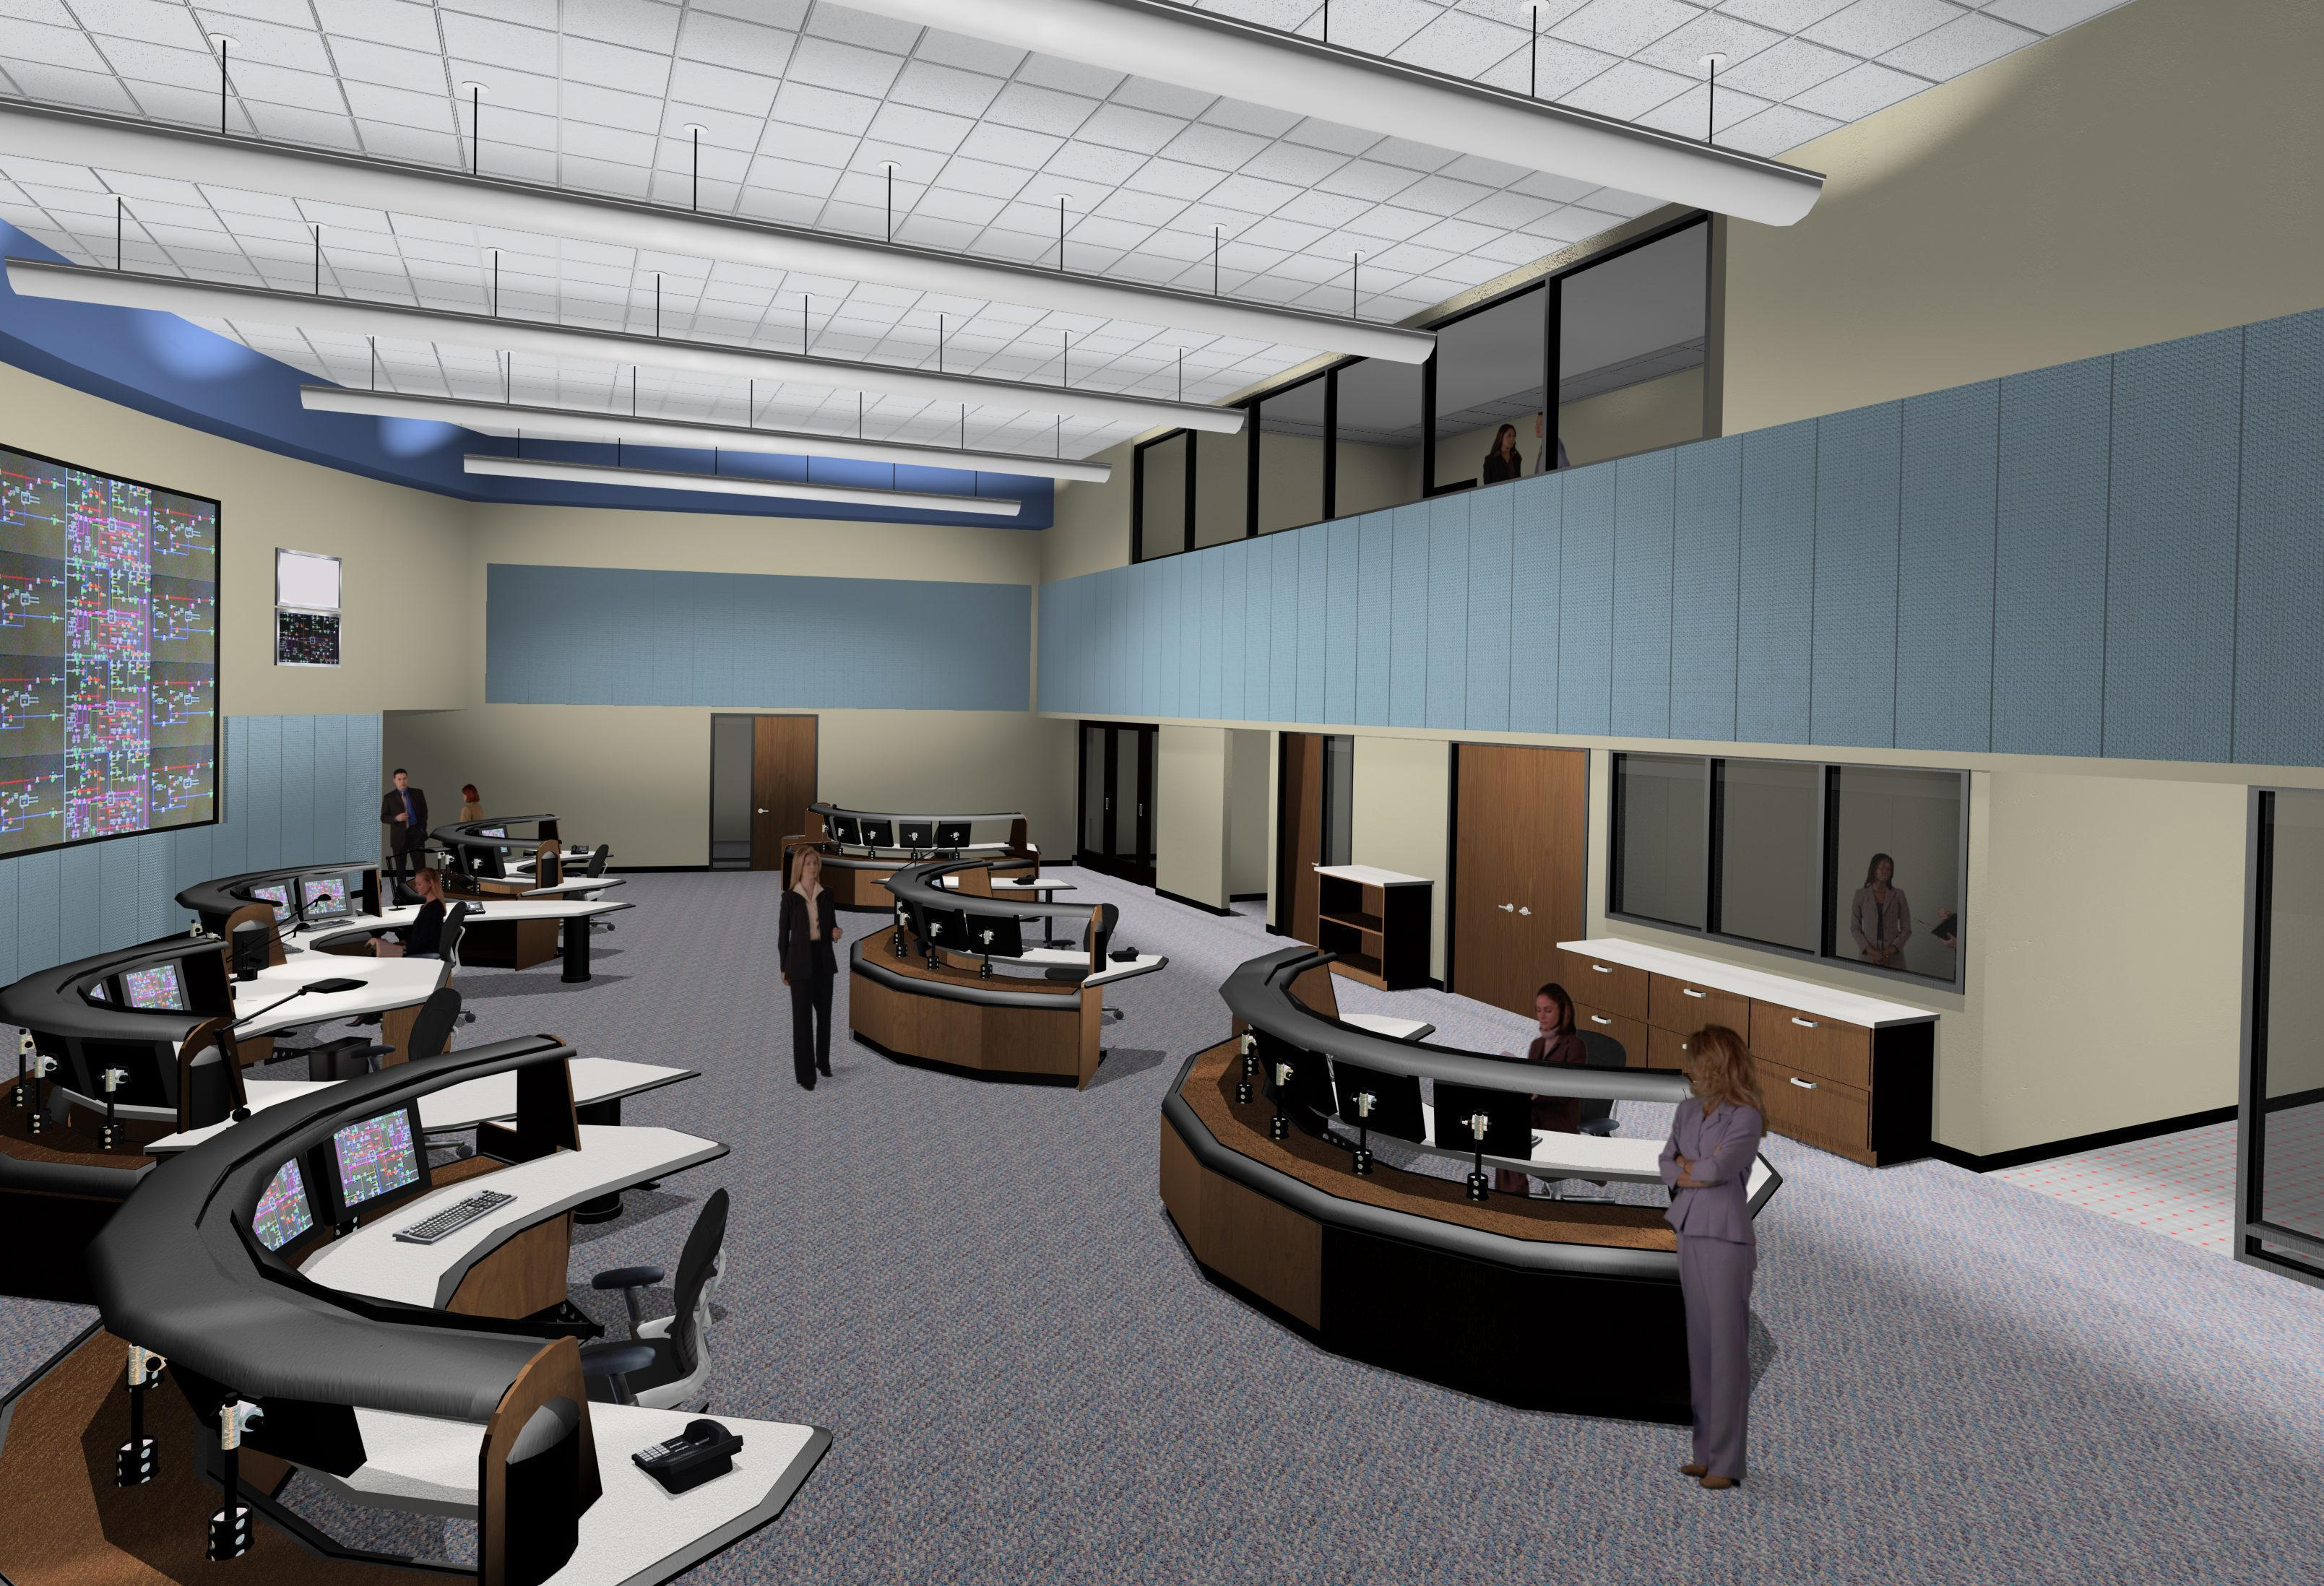 Side view of control room rendering